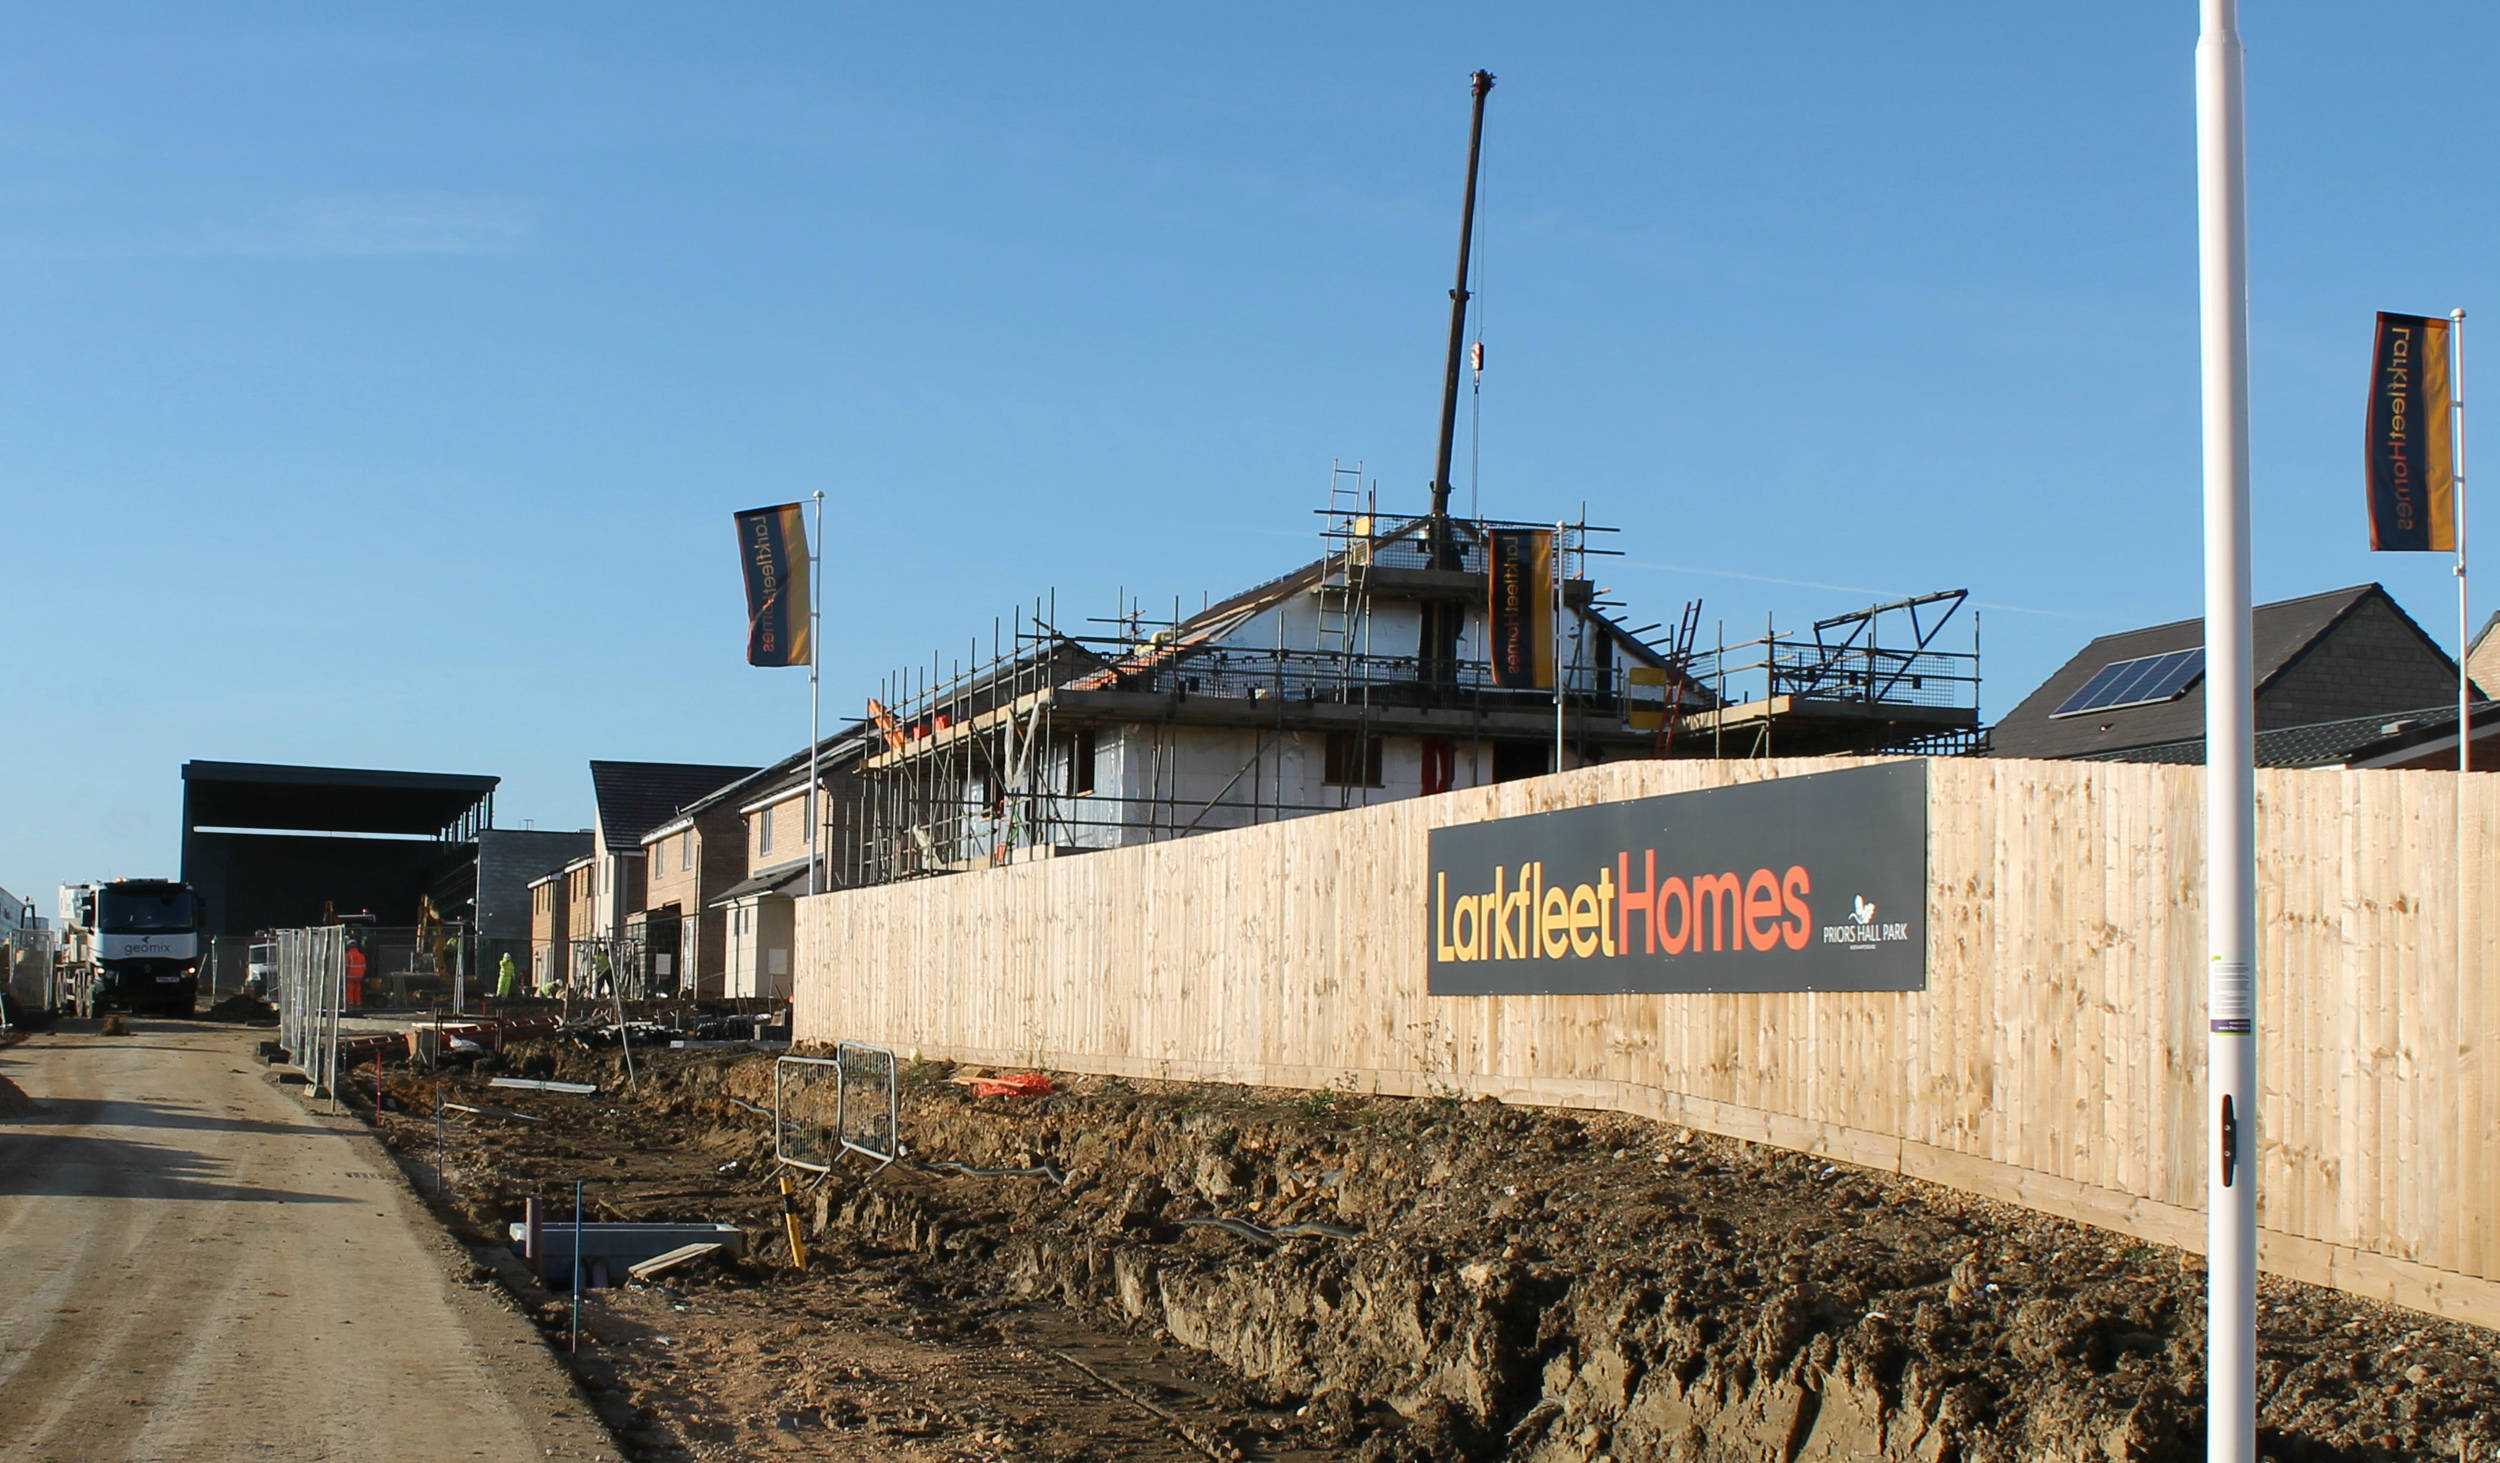 Larkfleet Homes starts the year with a series of land deals